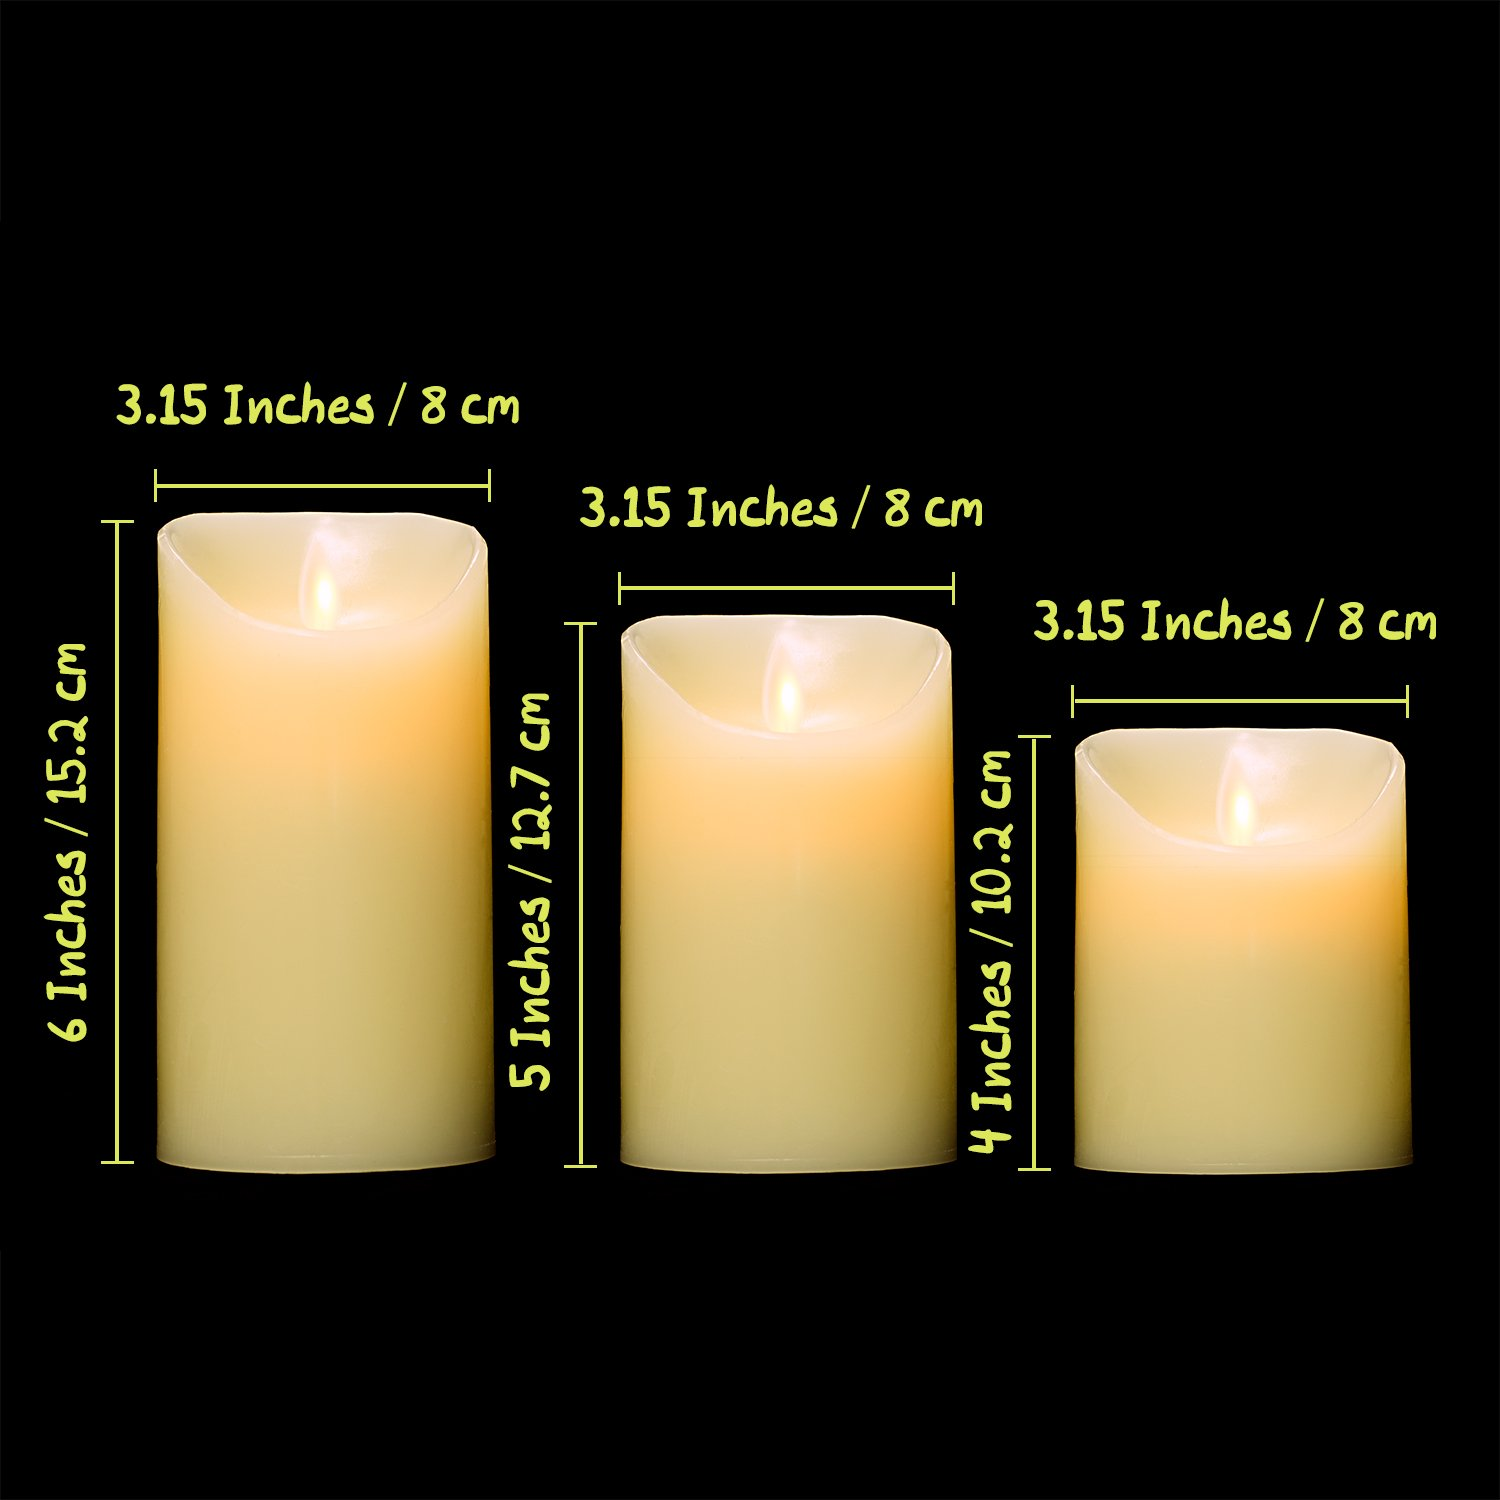 Flameless Candles, TEECOO Flickering LED Candles Φ3.15'' x H 4'' 5'' 6'' Set Of 3 Real Wax Pillar Not Plastic With 10-key Remote Control Timer 300+ Hours (3, Ivory) by TEECOO (Image #2)